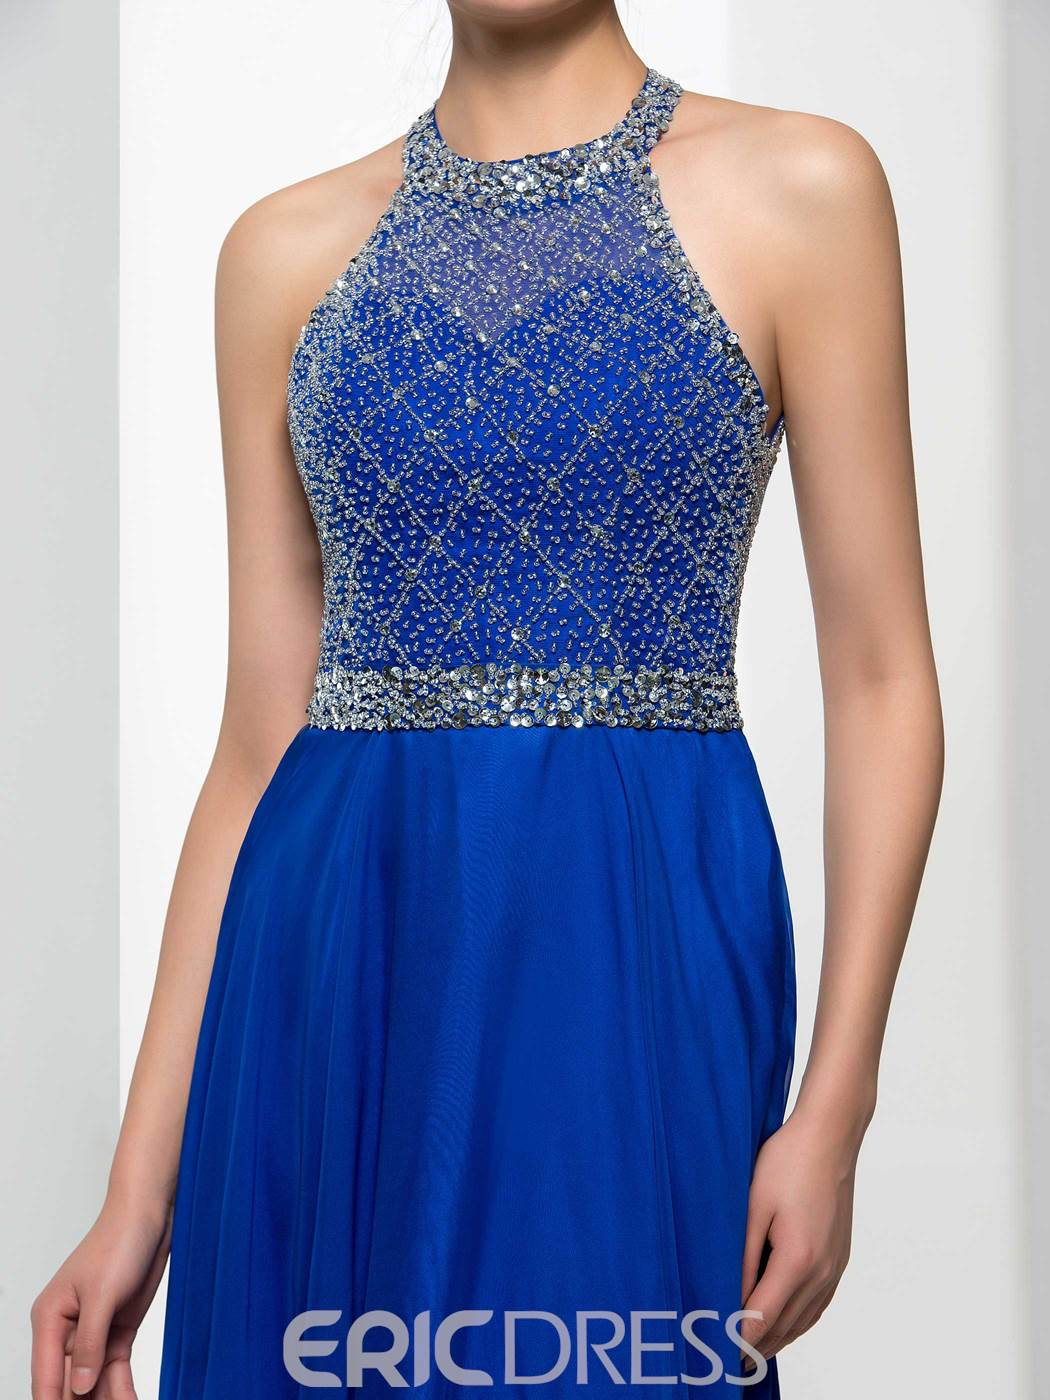 Ericdress Halter perles Sequins Prom Backless Dres